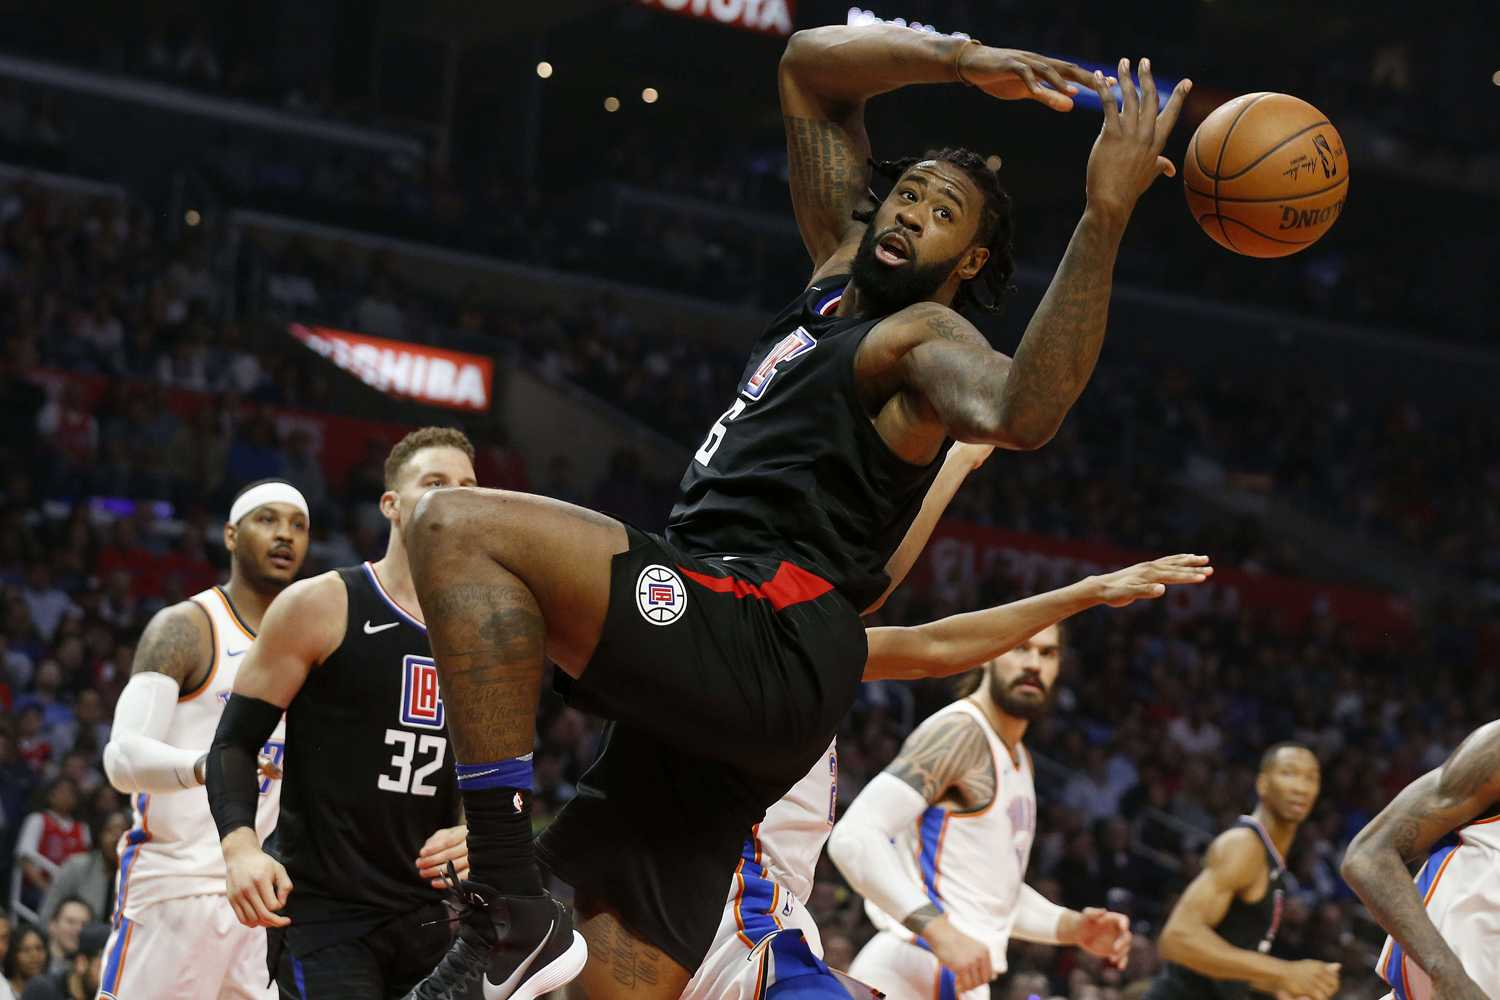 The Los Angeles Clippers' DeAndre Jordan (6) fights for a loose ball against the Oklahoma City Thunder in the first half at Staples Center in Los Angeles on Thursday, Jan. 4, 2018. (Gary Coronado/Los Angeles Times/TNS)